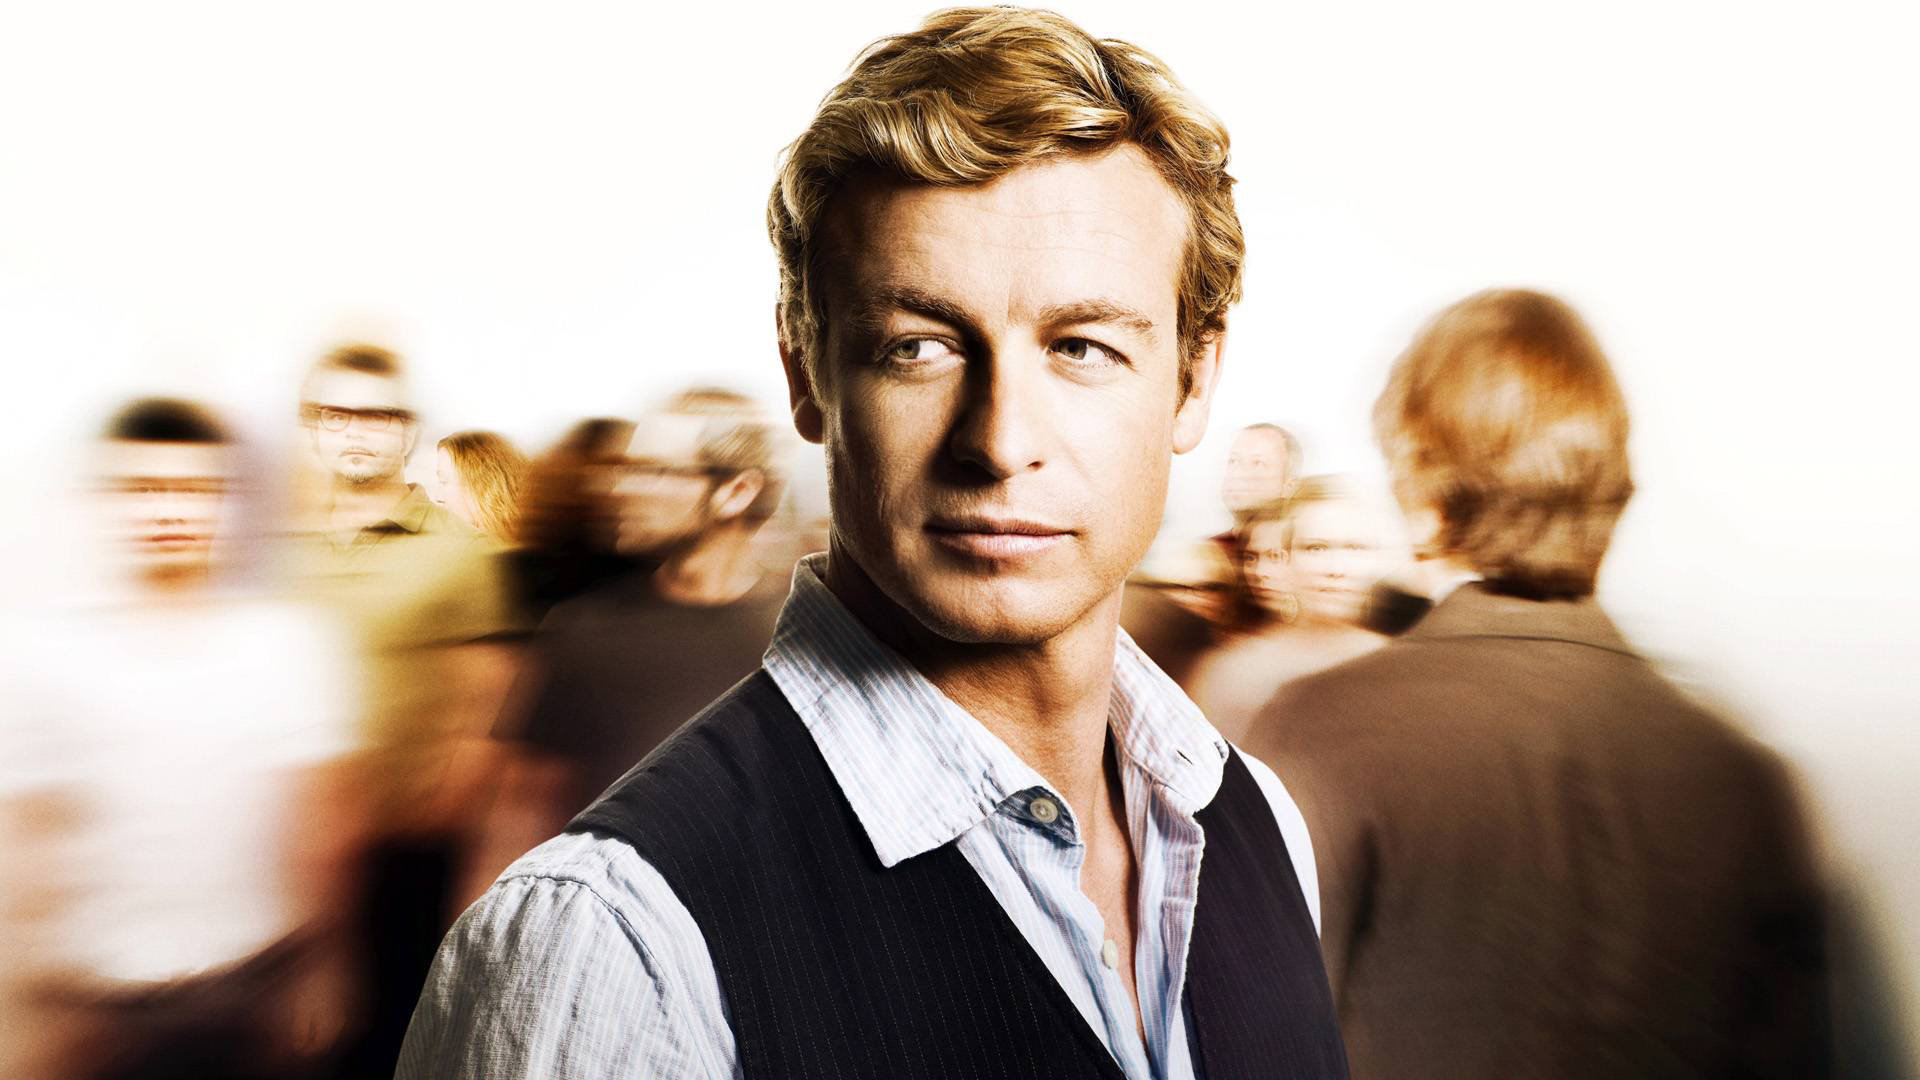 Download full hd 1080p Simon Baker computer background ID:131825 for free